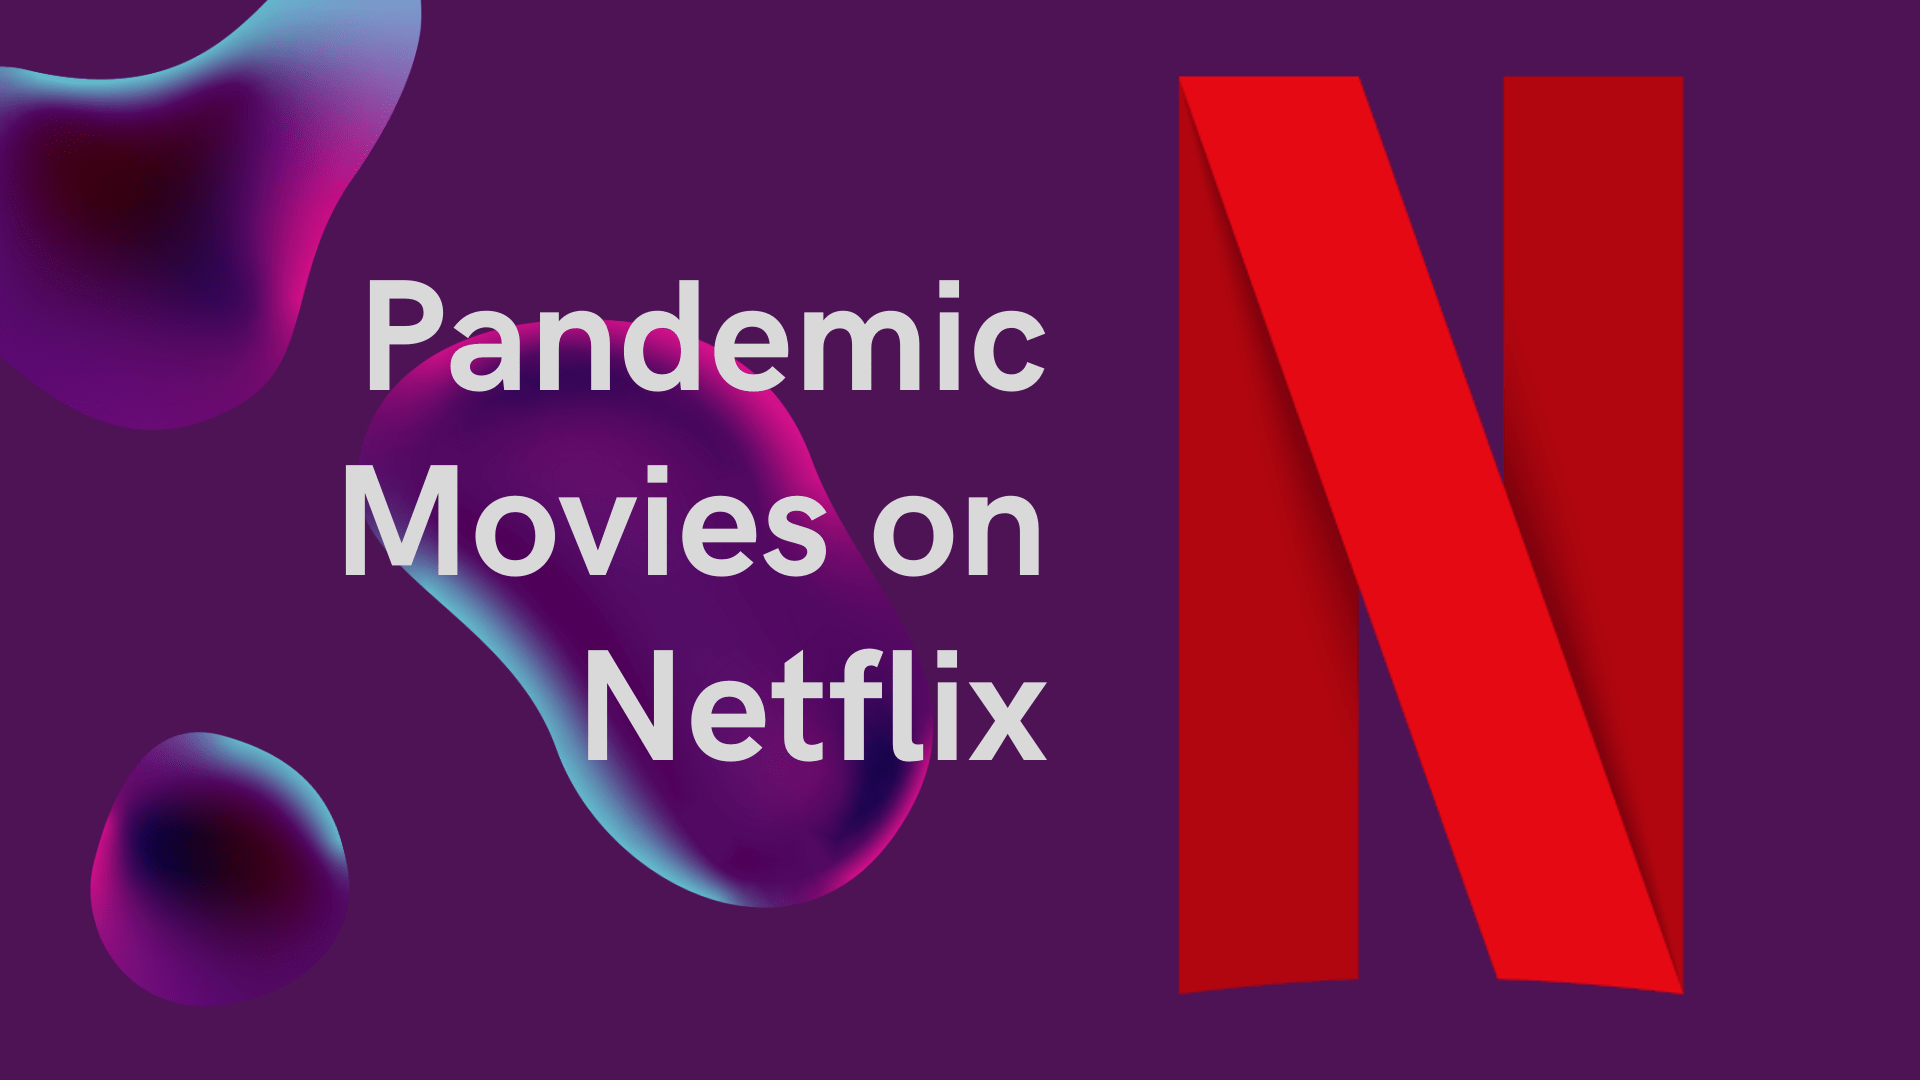 Pandemic Movies on Netflix